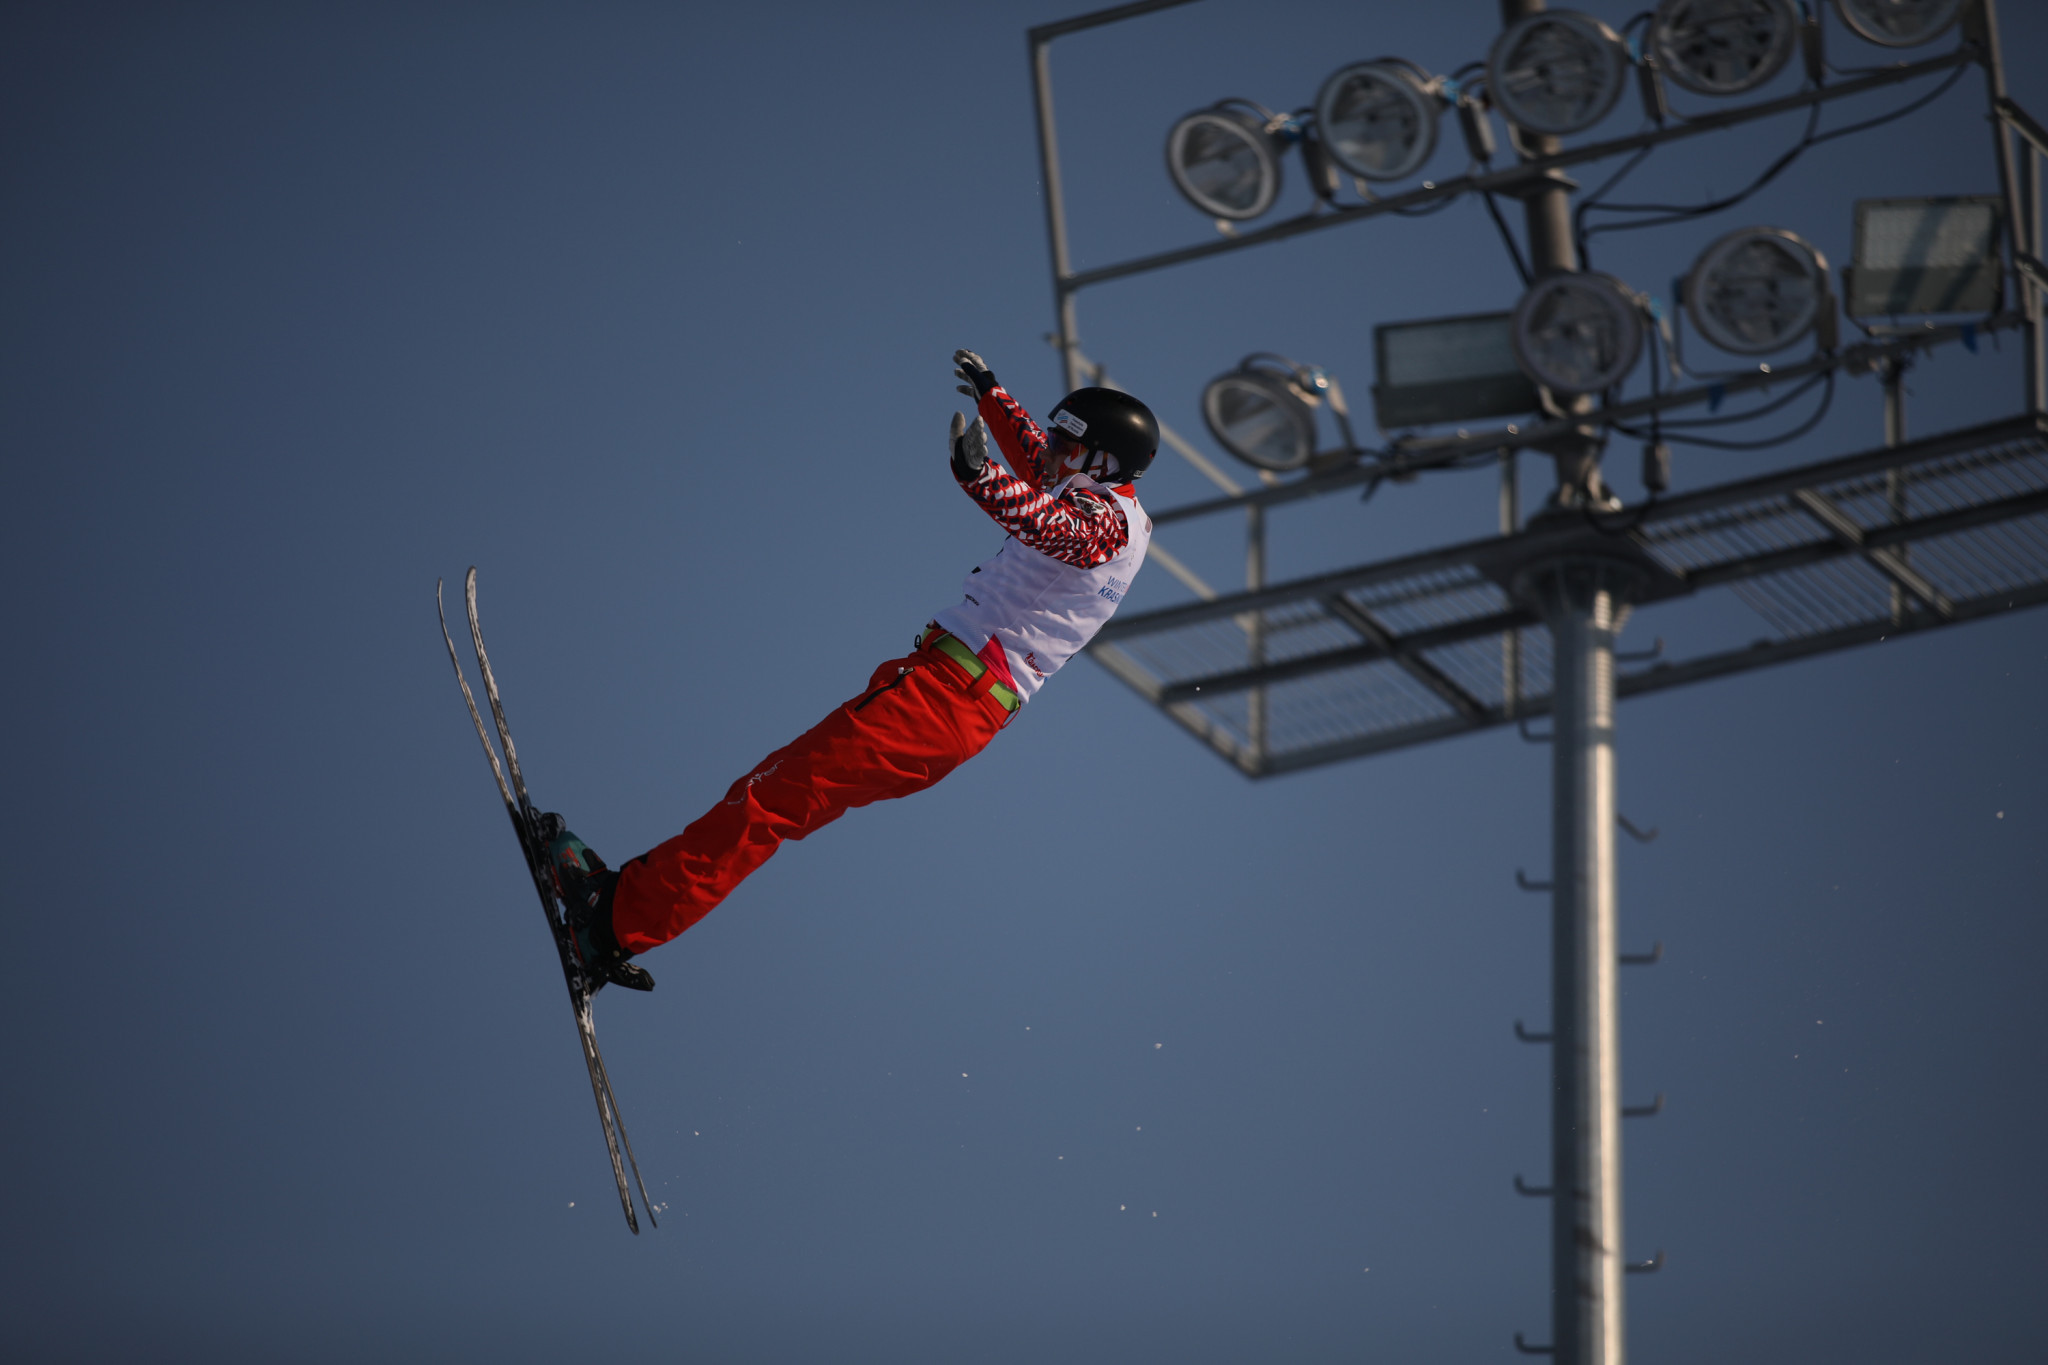 World champions take gold in freestyle skiing aerials at Krasnoyarsk 2019 Winter Universiade